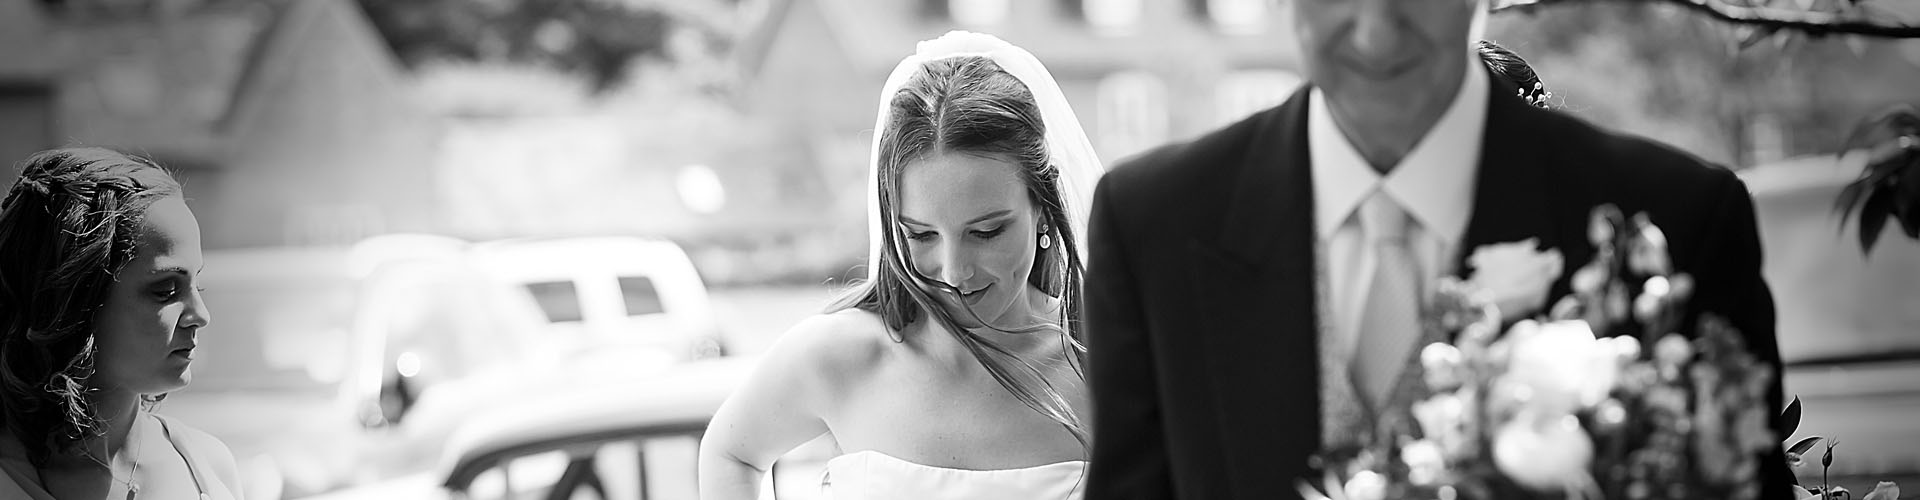 wedding photography london